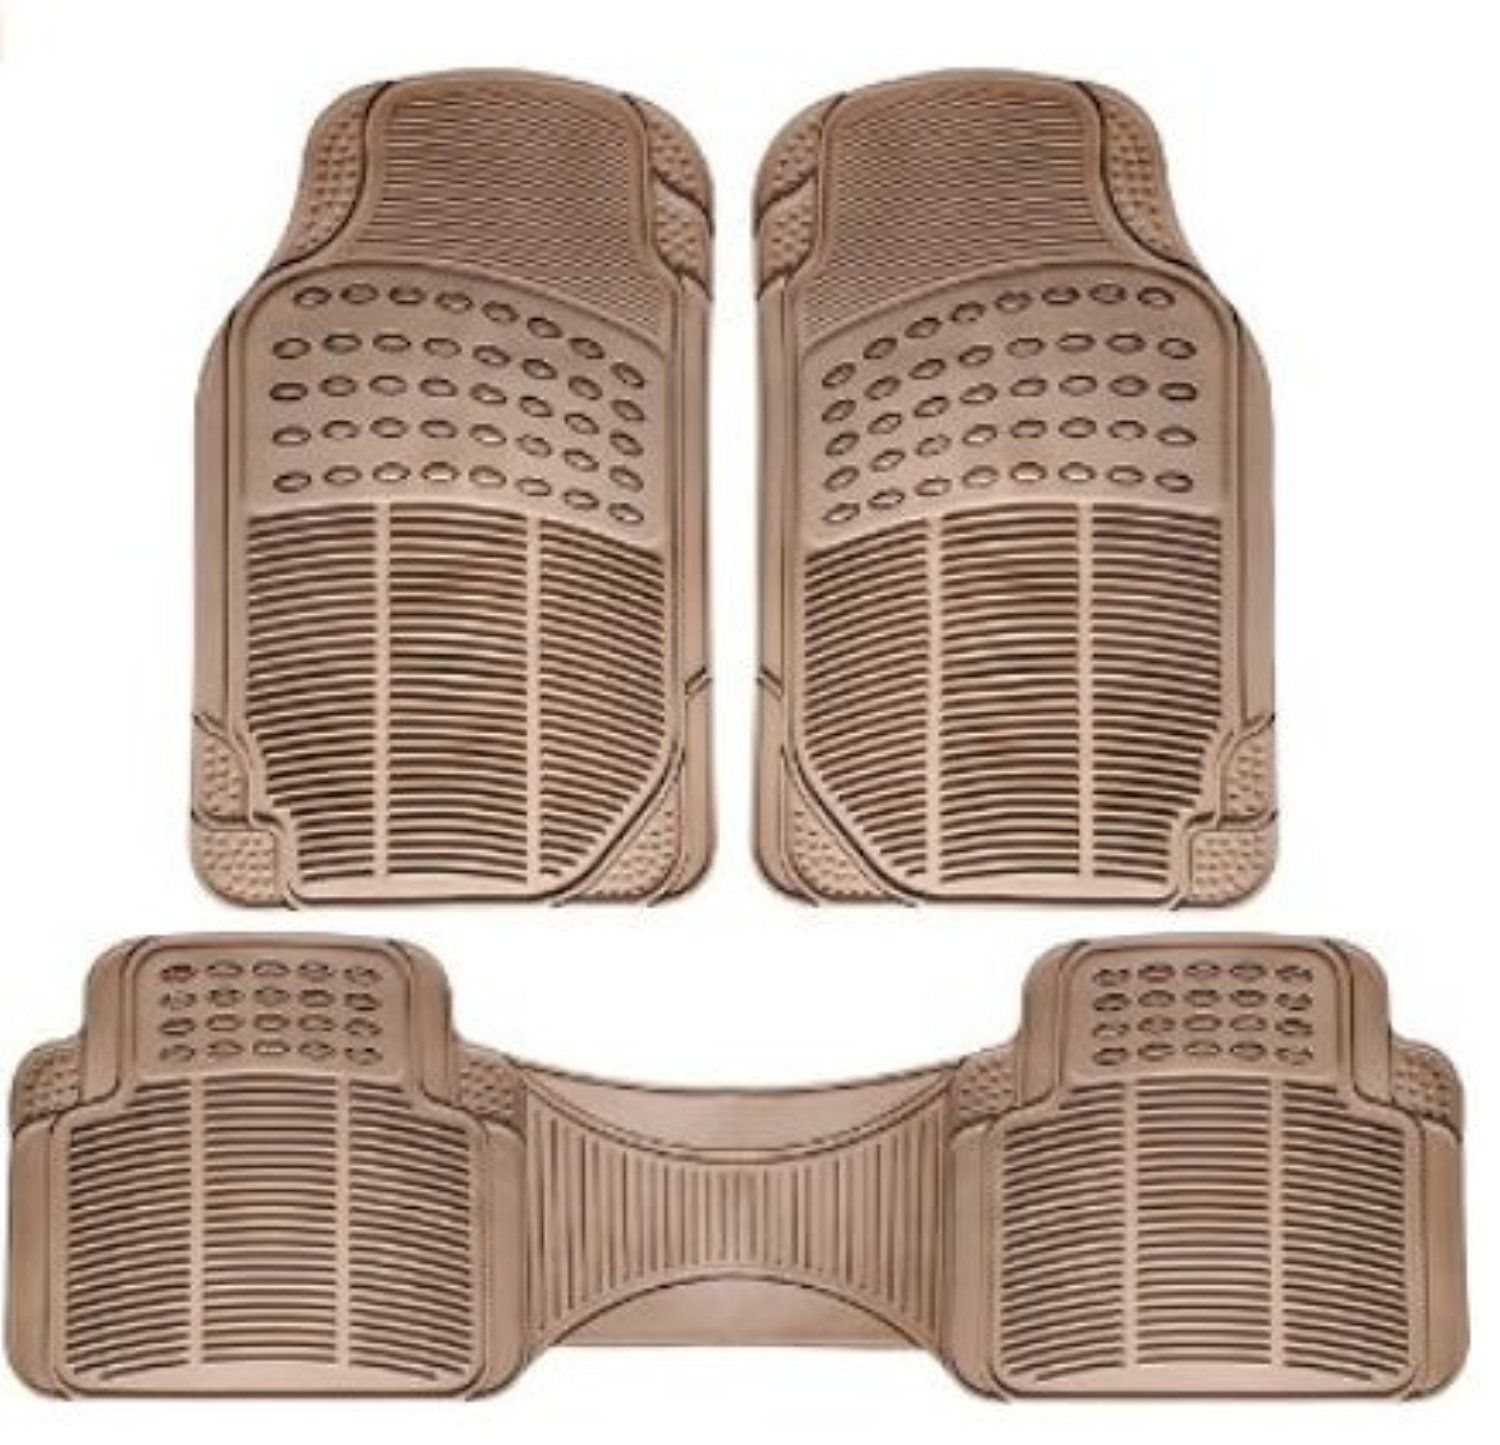 MIRRF EEDDTE Floor Mats Awesome products selected by